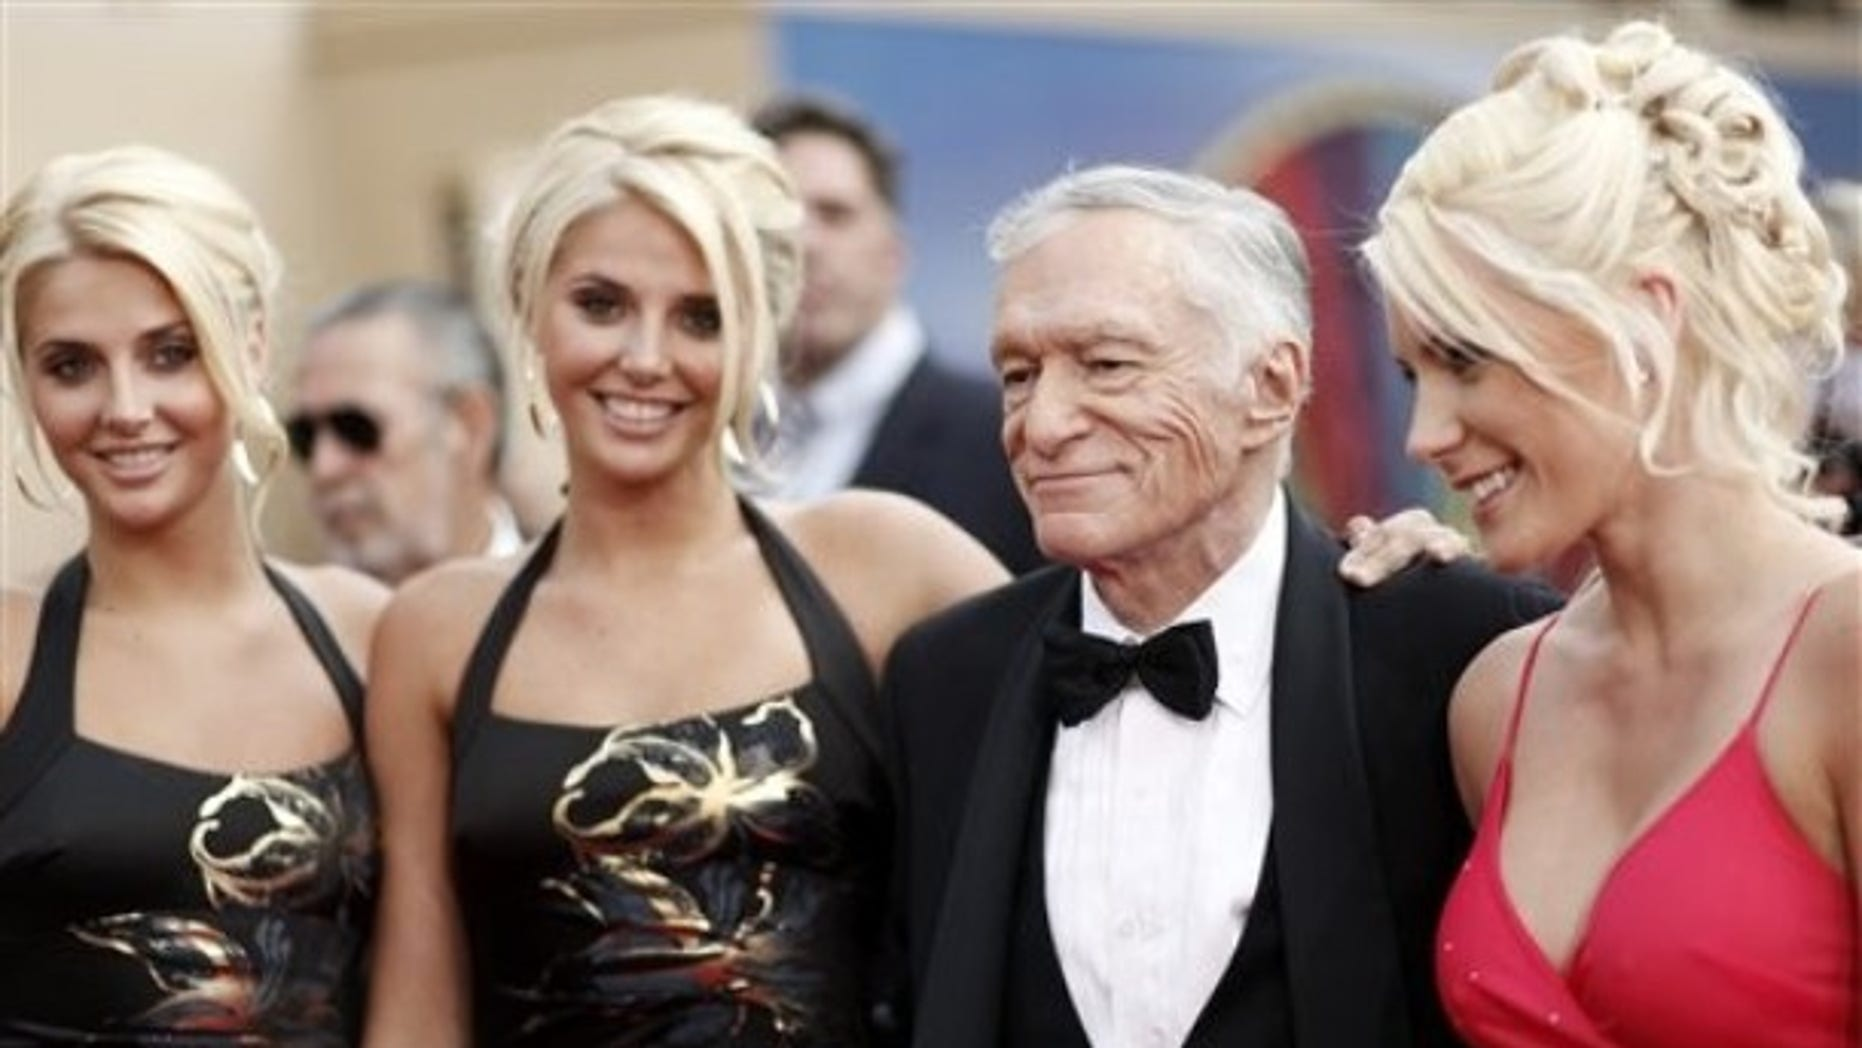 June 11, 2009: Identical twins Karissa and Kristina Shannon, Hugh Hefner, second from right, and Crystal Harris, right, arrive at the taping of the American Film Institute Life Achievement Awards honoring actor Michael Douglas in Culver City, Calif.